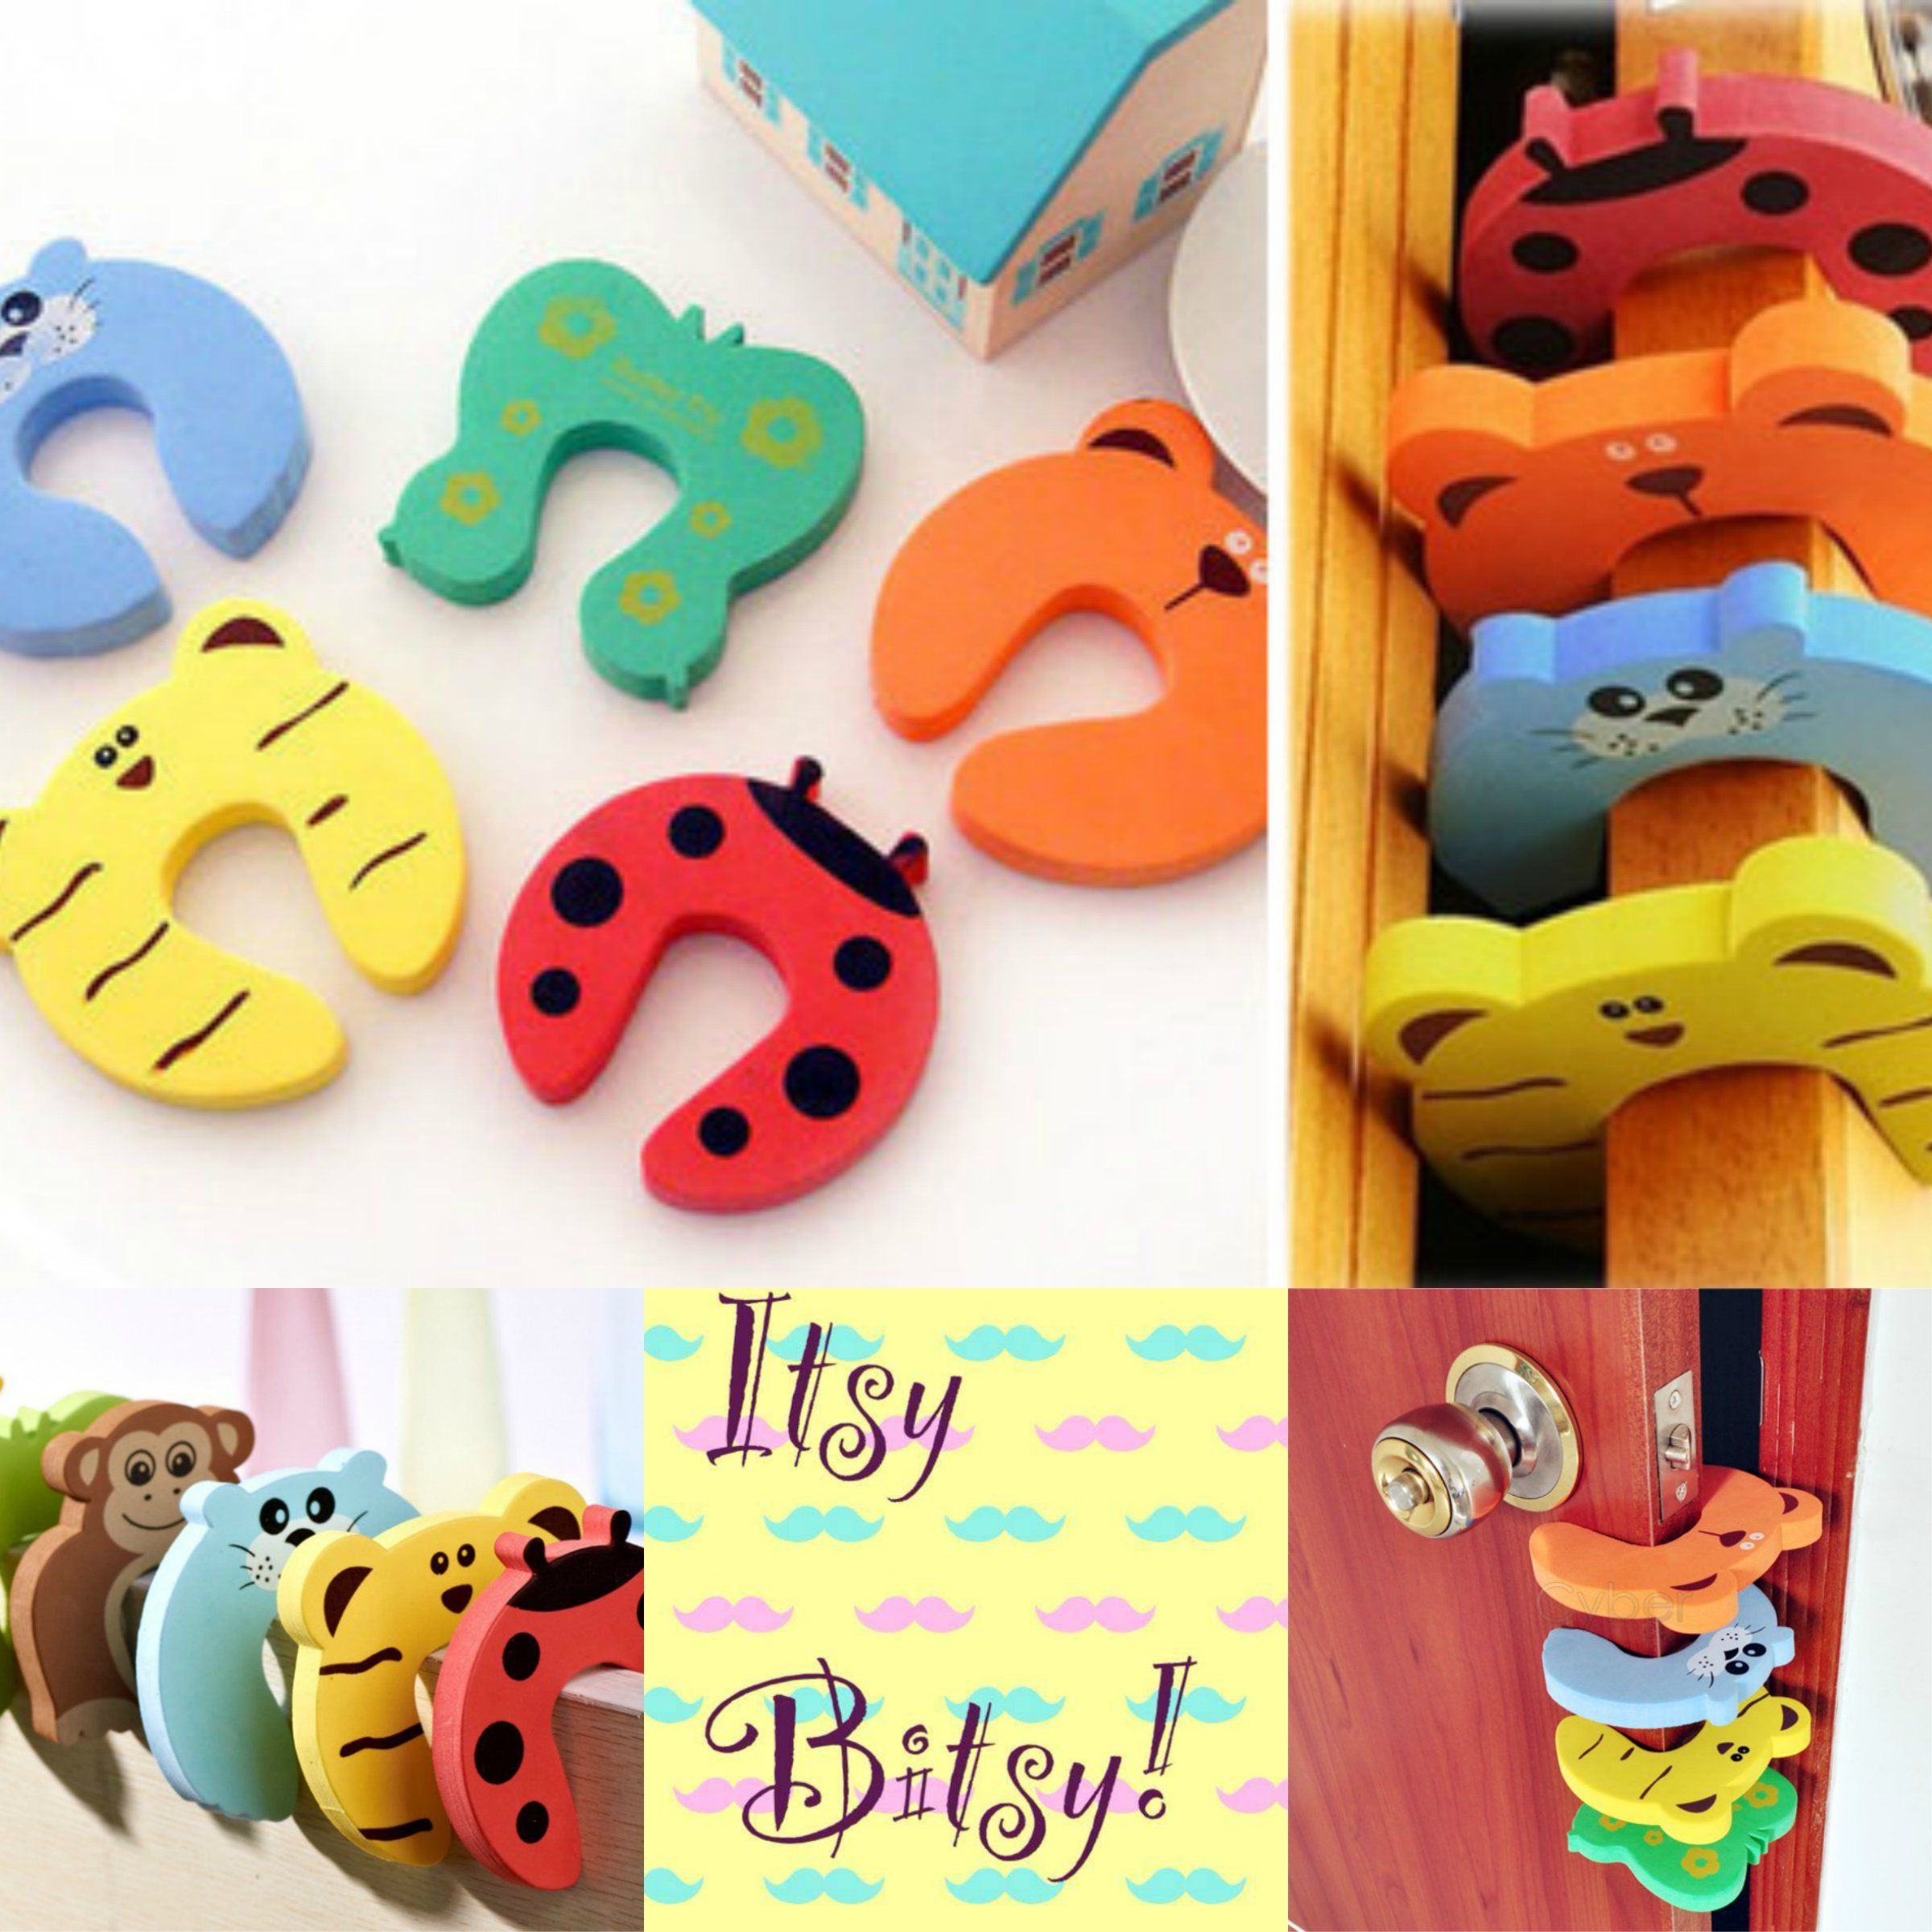 Baby Safety Door stopper anti-pinch door Guards 5pcs Order at our Facebook page   sc 1 st  Pinterest & Baby Safety Door stopper anti-pinch door Guards 5pcs Order at our ... pezcame.com